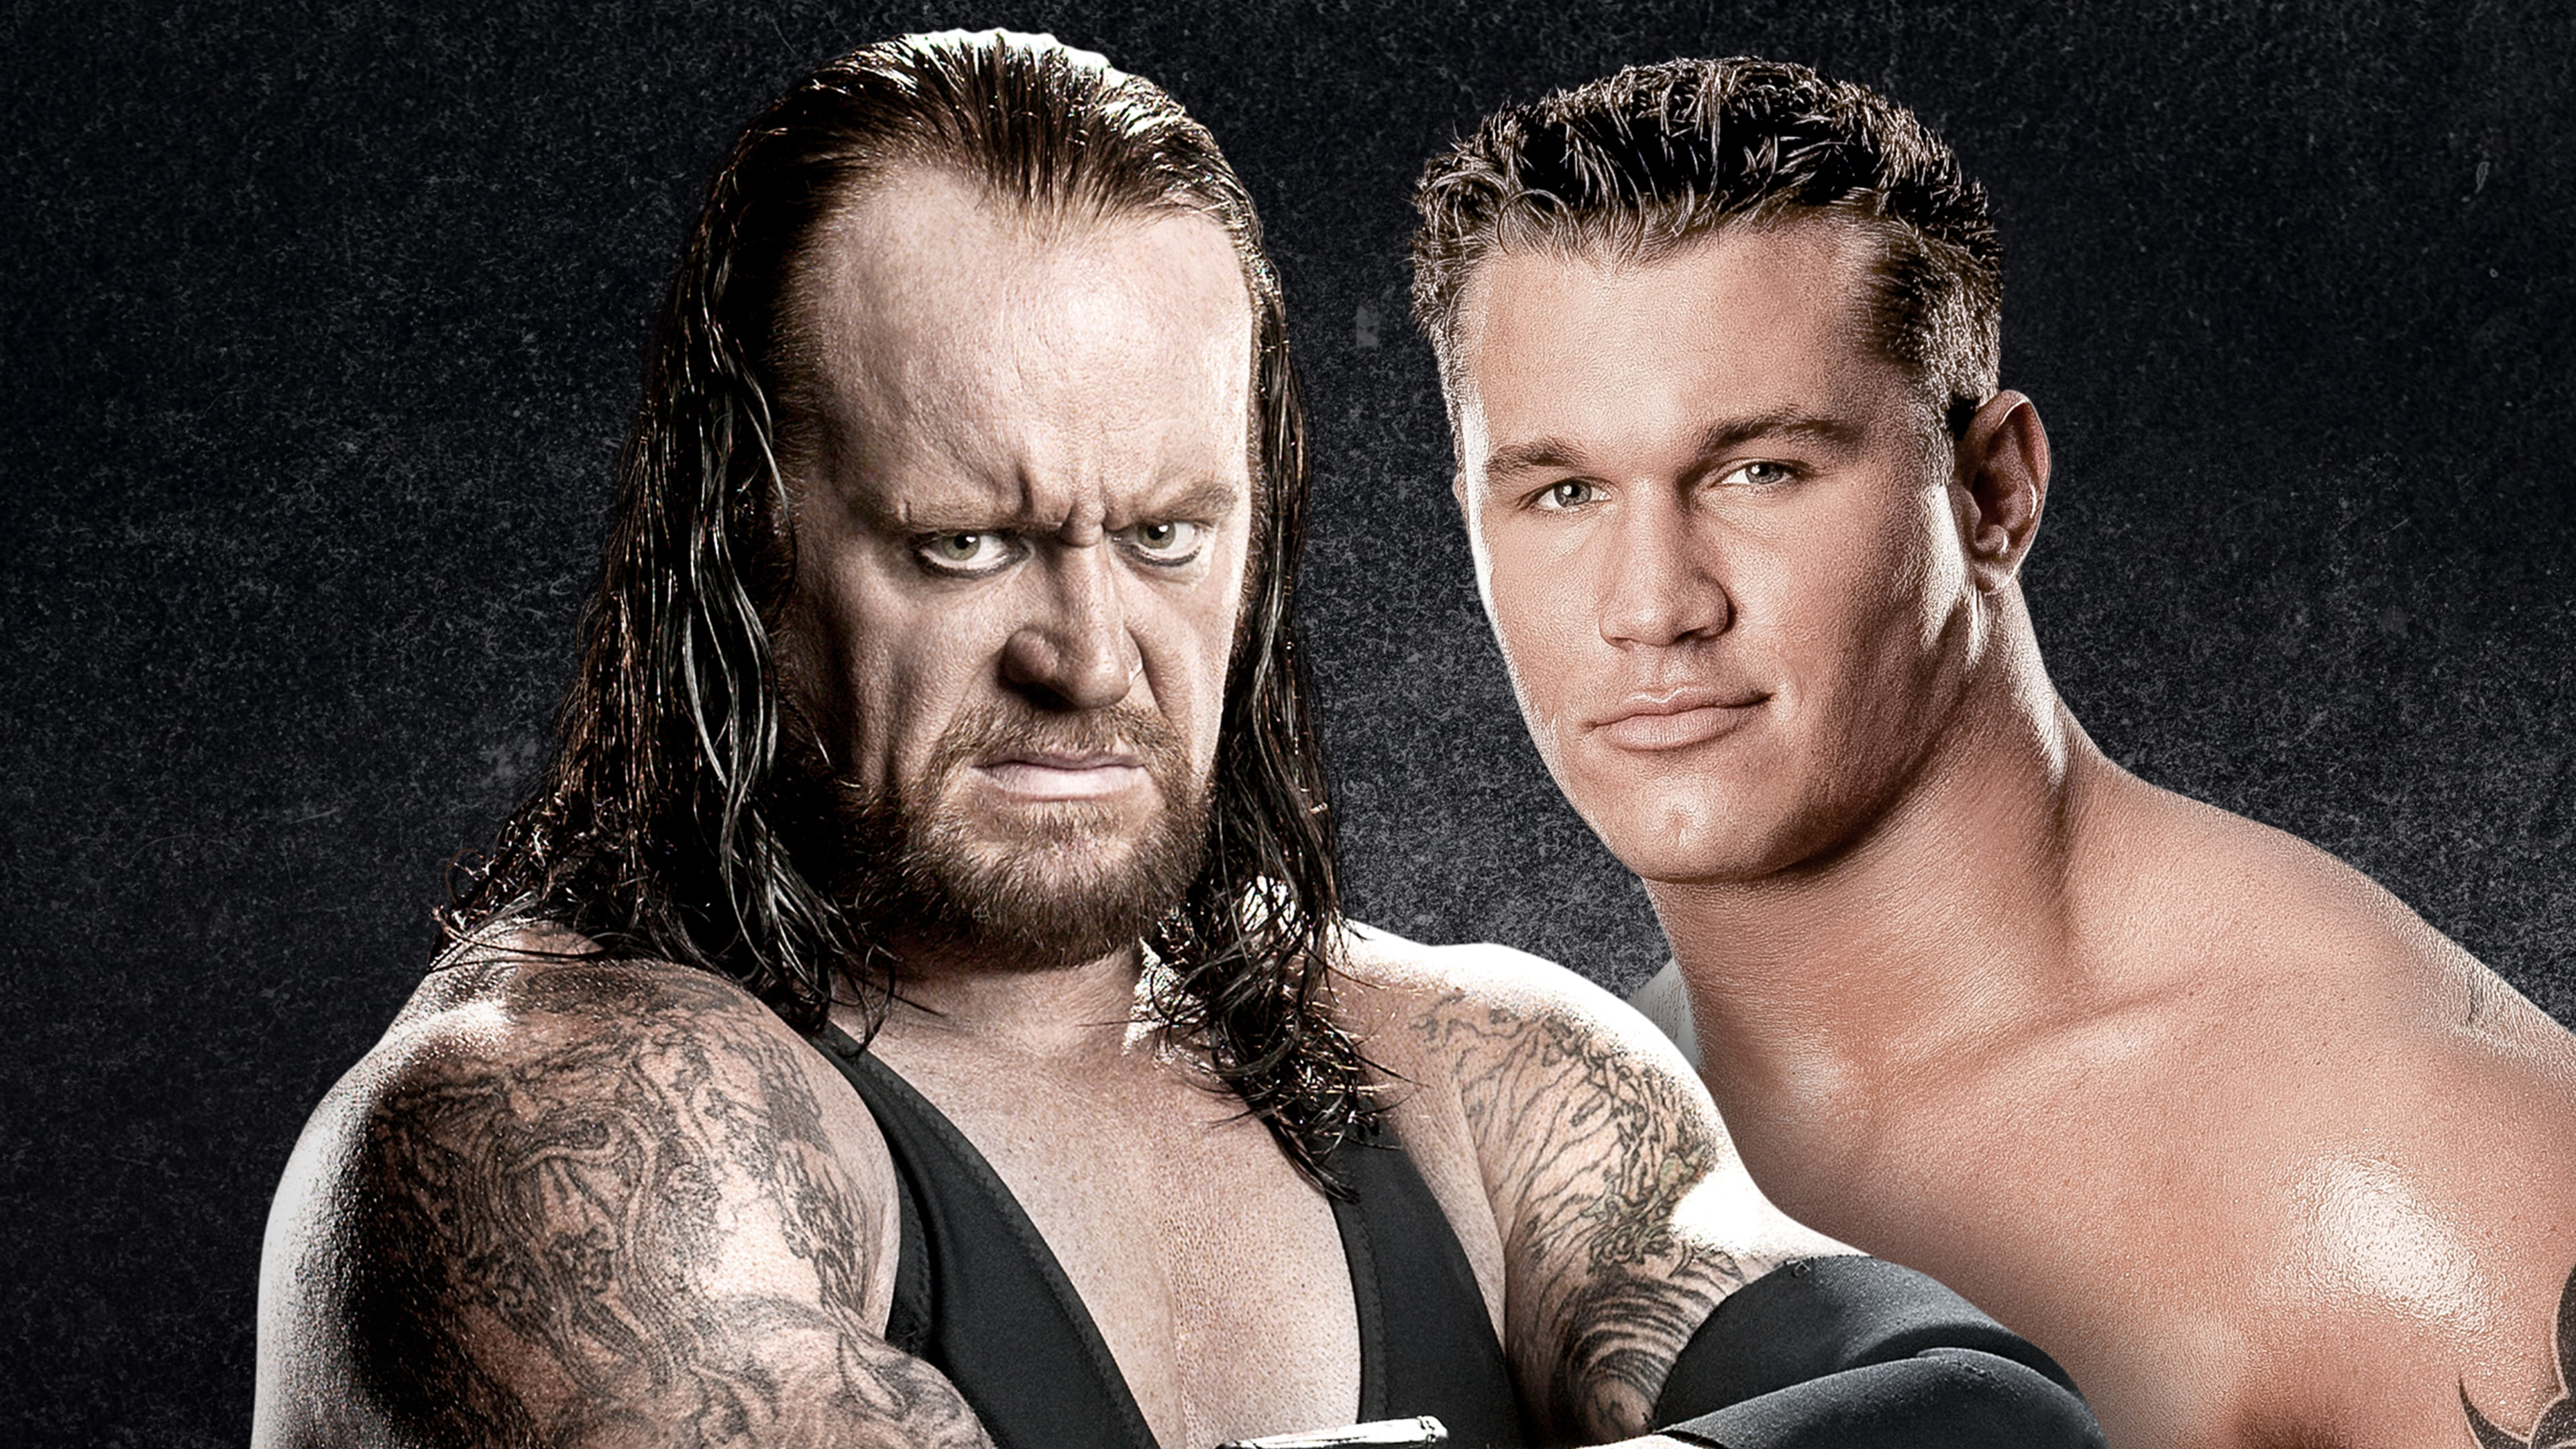 The Phenom and The Legend Killer